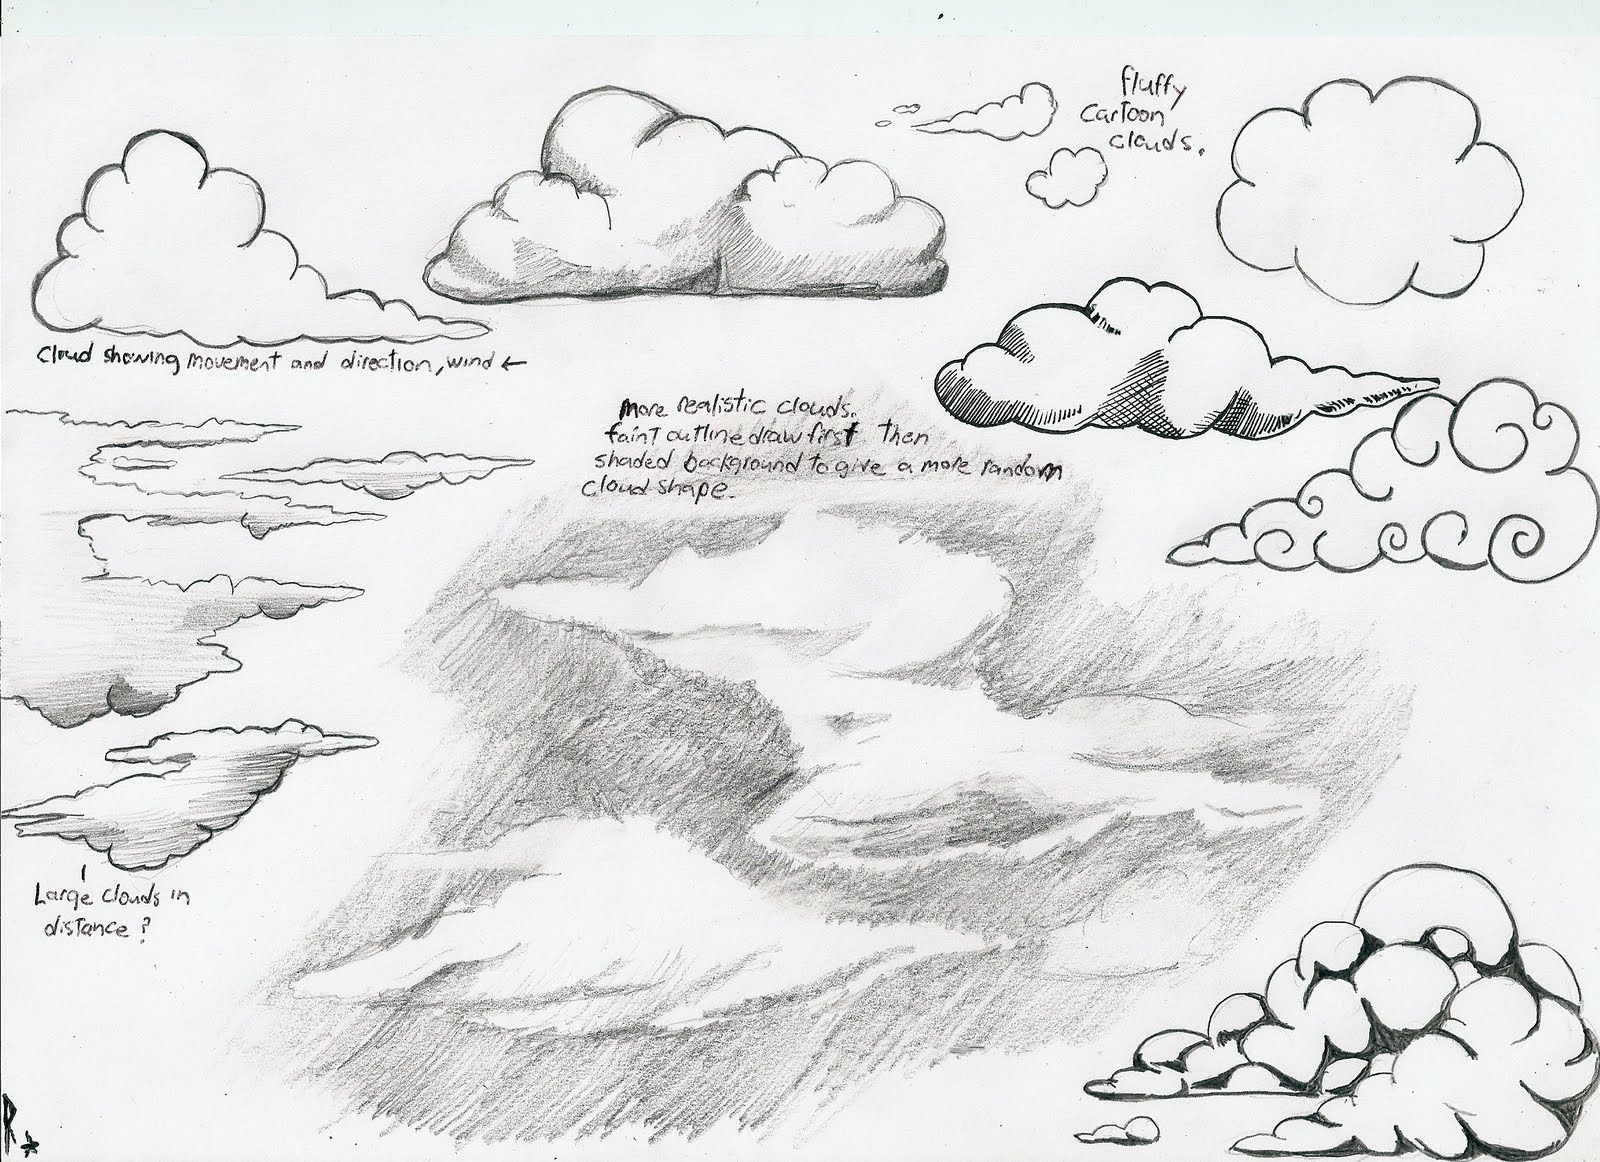 Drawn pen cloud Steps Mountains in Draw 5